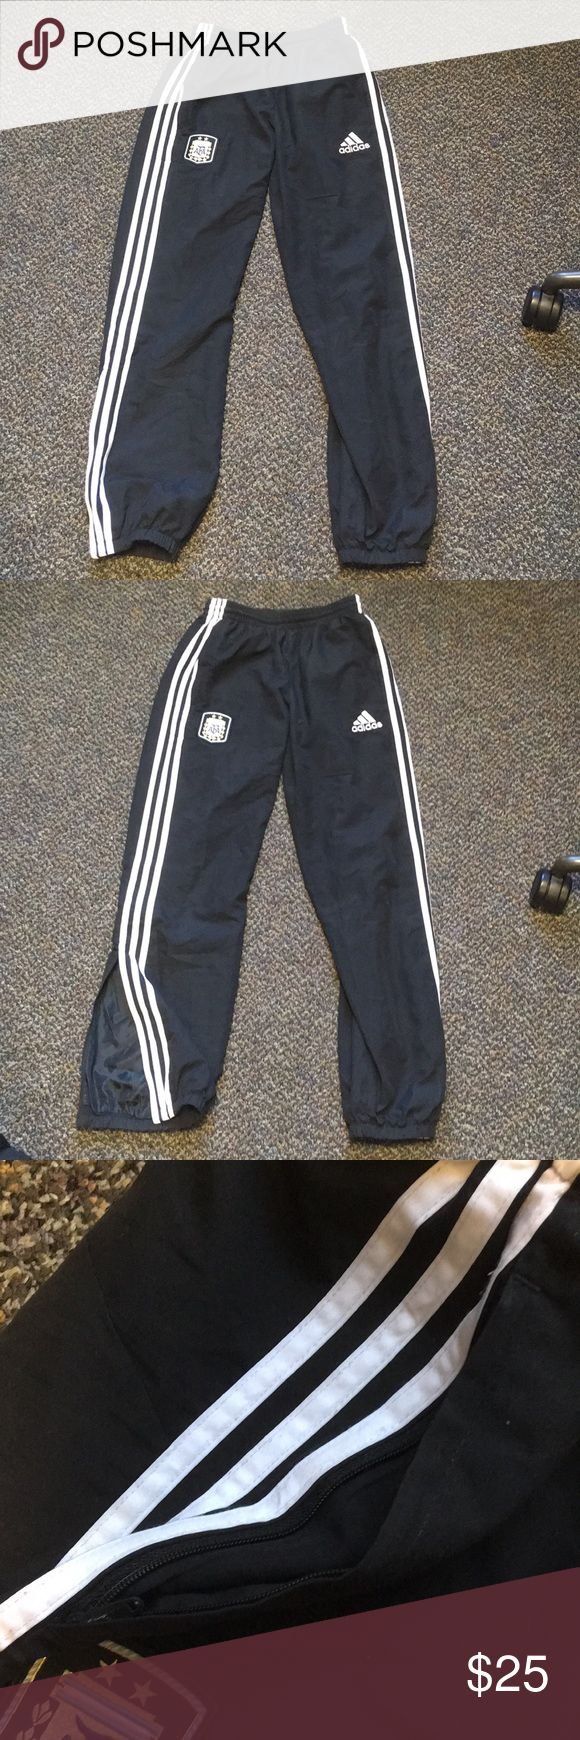 Adidas athletic sweatpants w/ Argentina team patch Adidas sweatpants bought in Italy has Argentina soccer team logo patch (originally bought with that on) kids xl, but fits women's small. Slightly used. 100%polyester. Elastic and drawstring waist, elastic cuffed pant ends, zippered pockets, and zipper half way up calf (see pics). adidas Pants Straight Leg